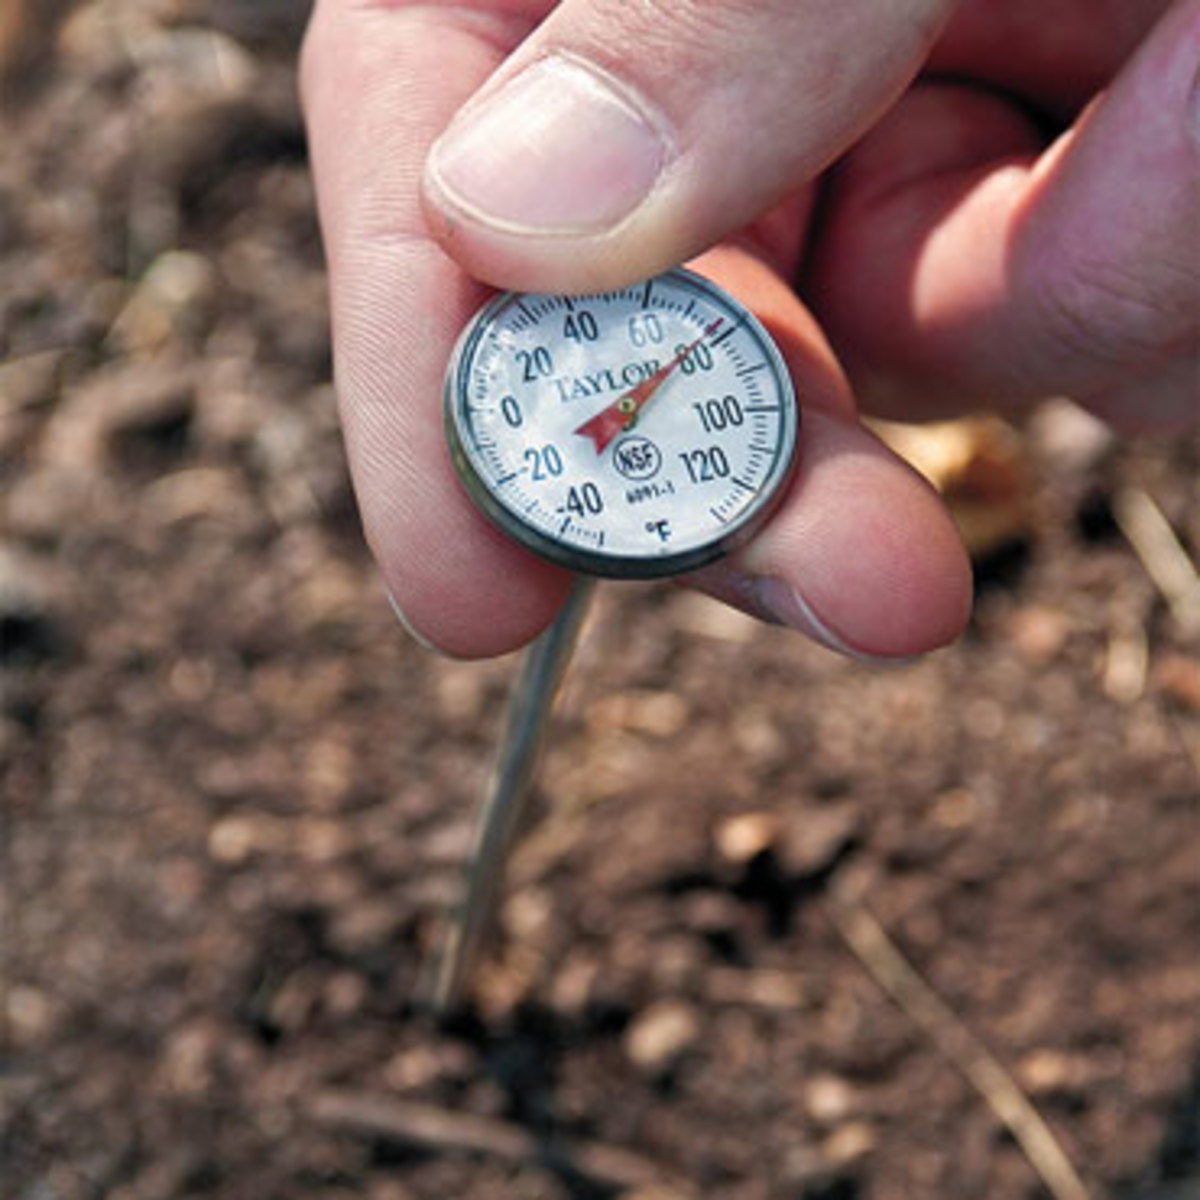 Cold soil is the enemy of most plants.  You can purchase a very inexpensive soil thermometer and save yourself many headaches that come from planting too early before the soil reaches the appropriate temperature.